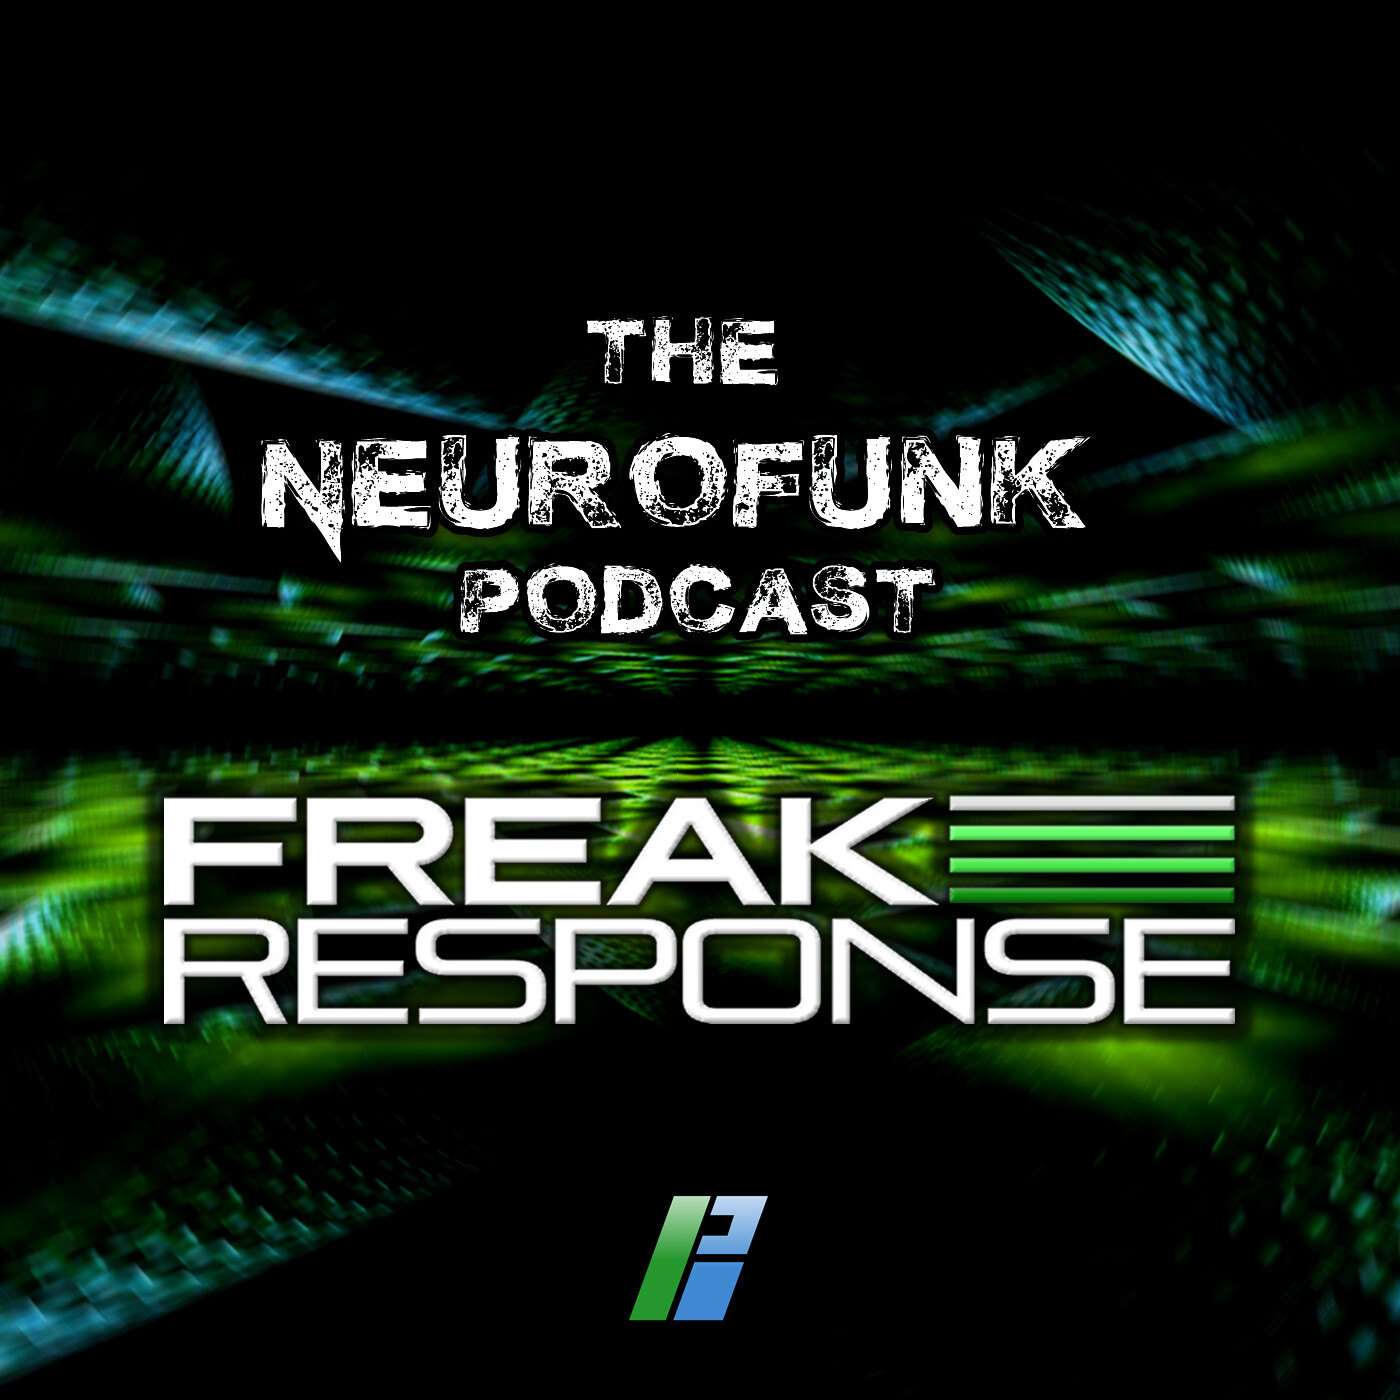 106: Freak Response - The Neurofunk Podcast 102- Monday 19th Oct 2020